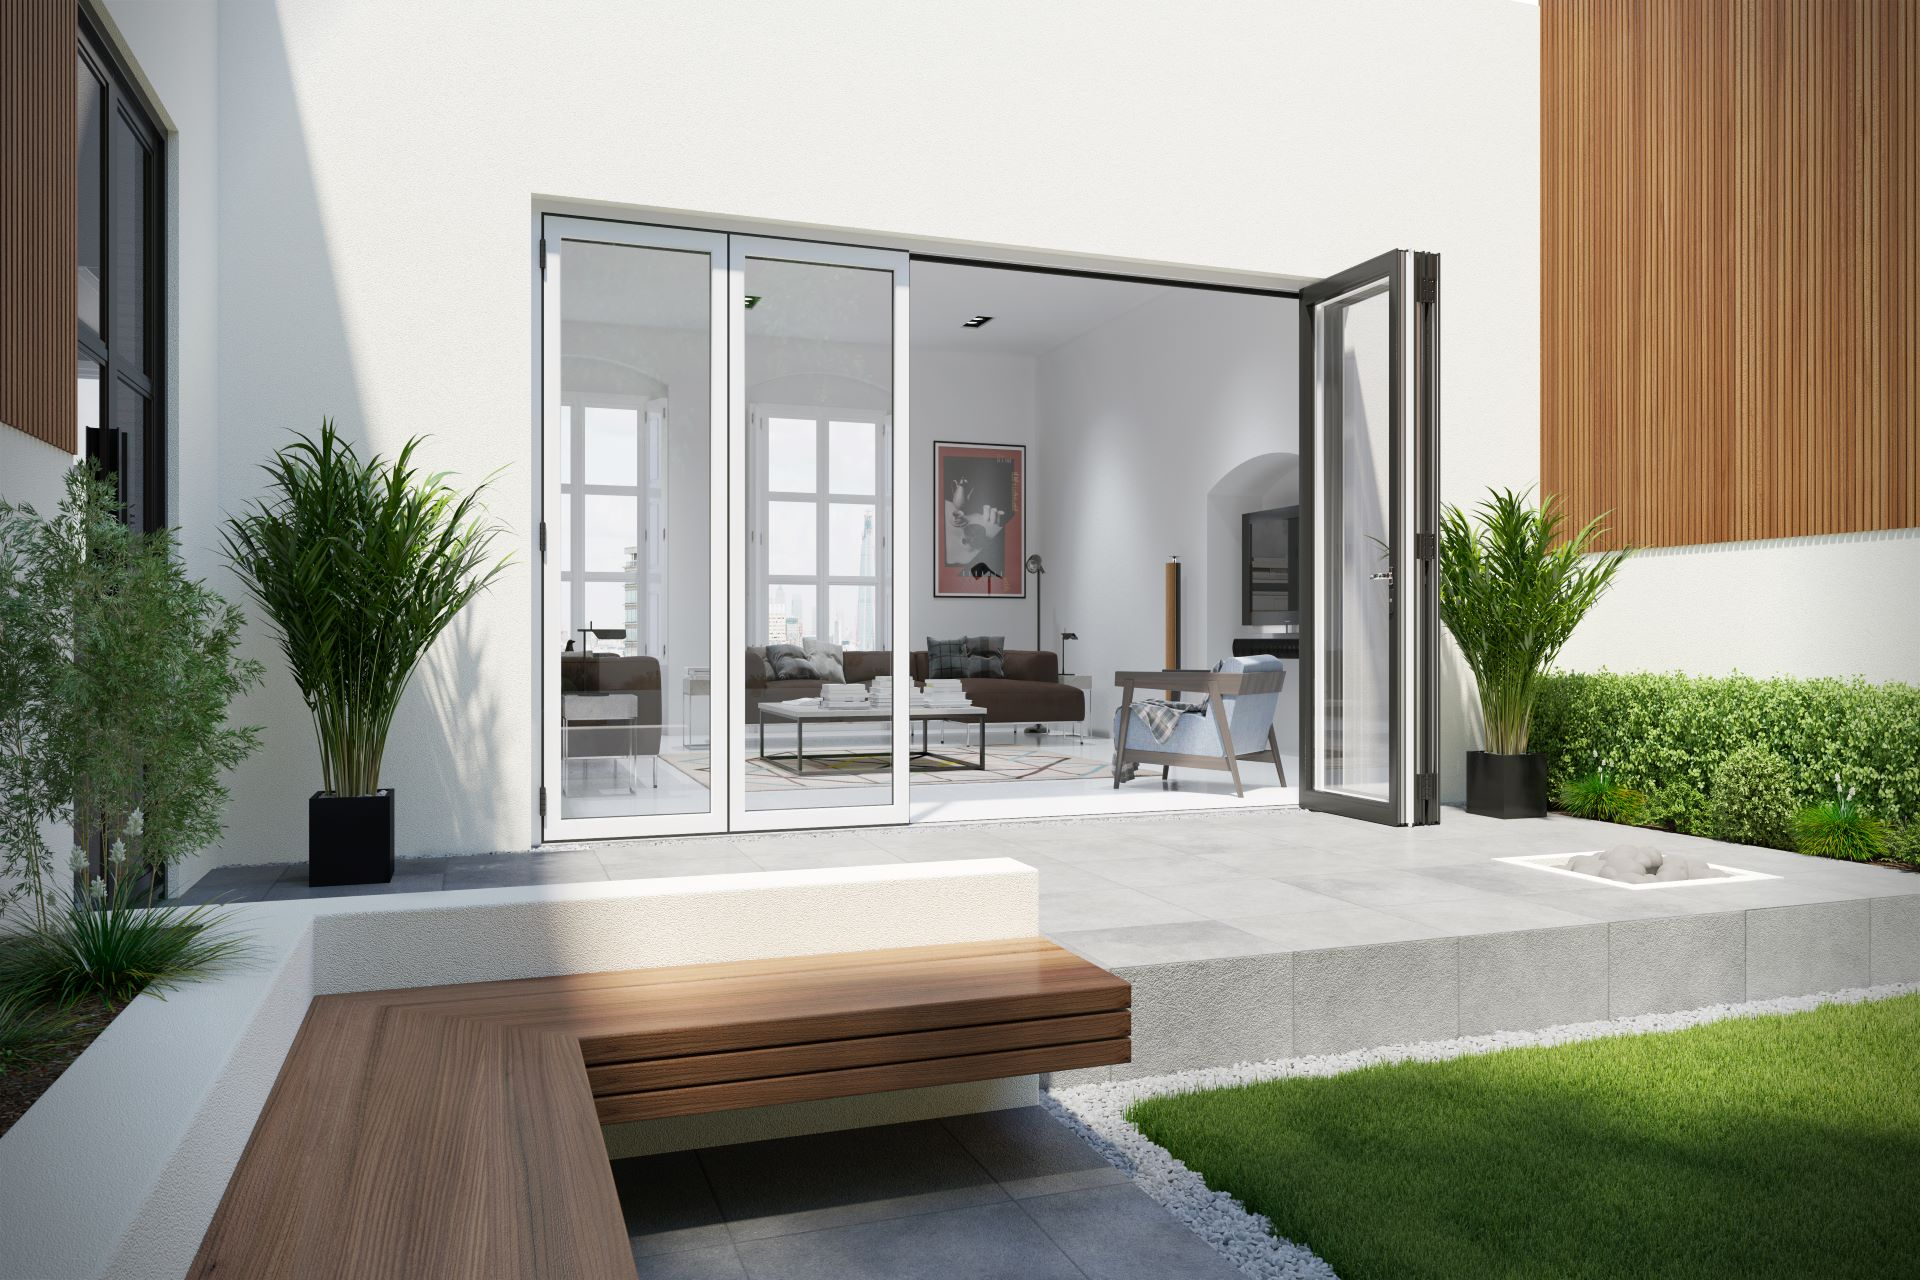 Bi Folding Doors Contemporary Exterior 3 4 Final Hr V02 02